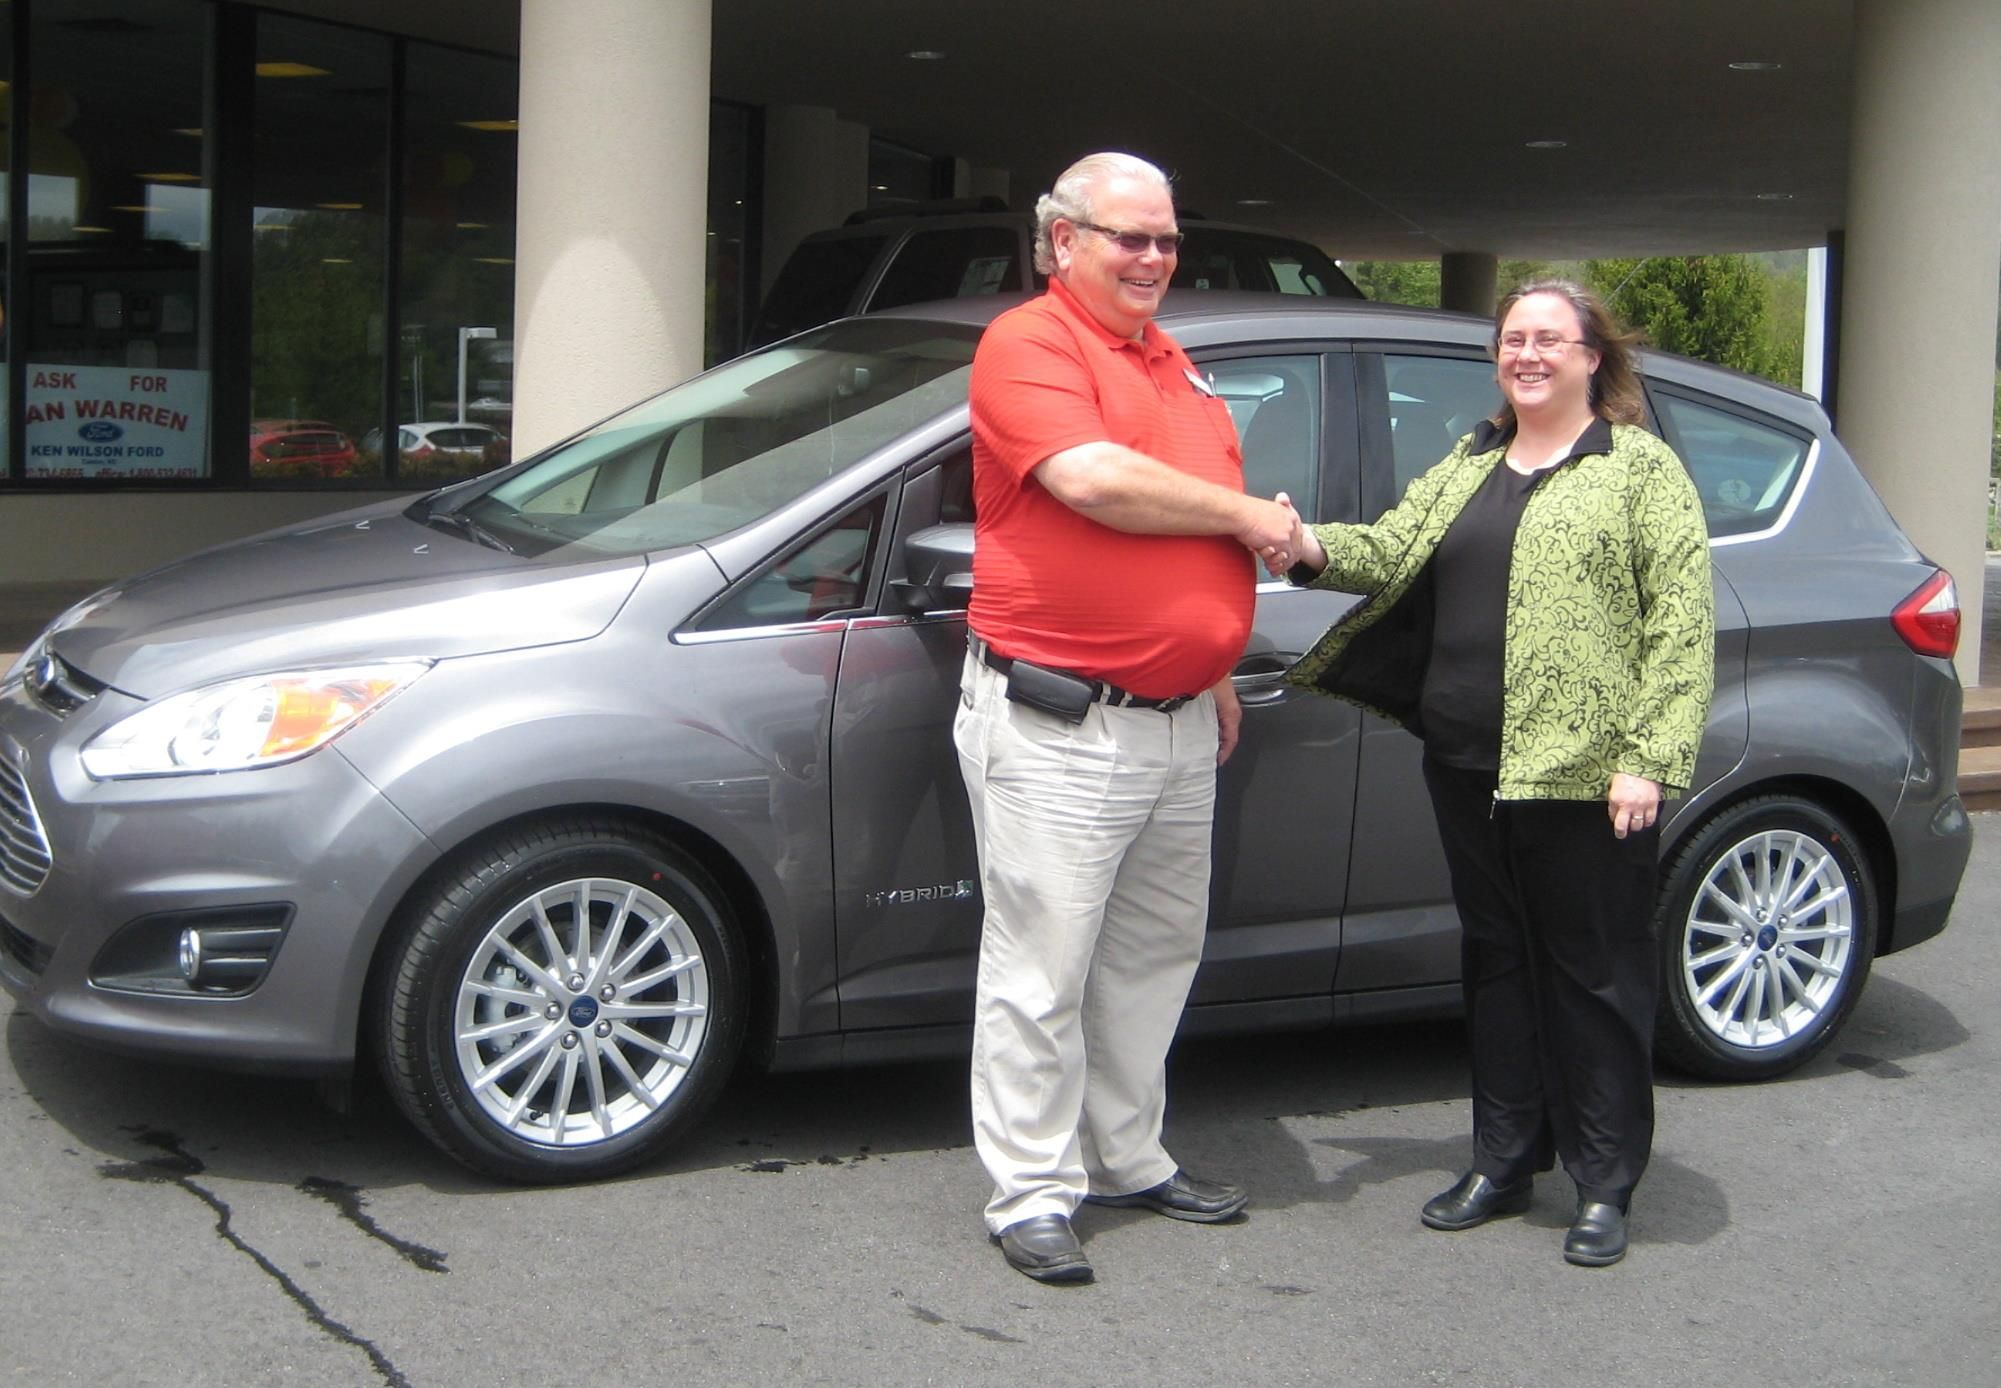 Congratulations to Lori and Michael M on the purchase of their new